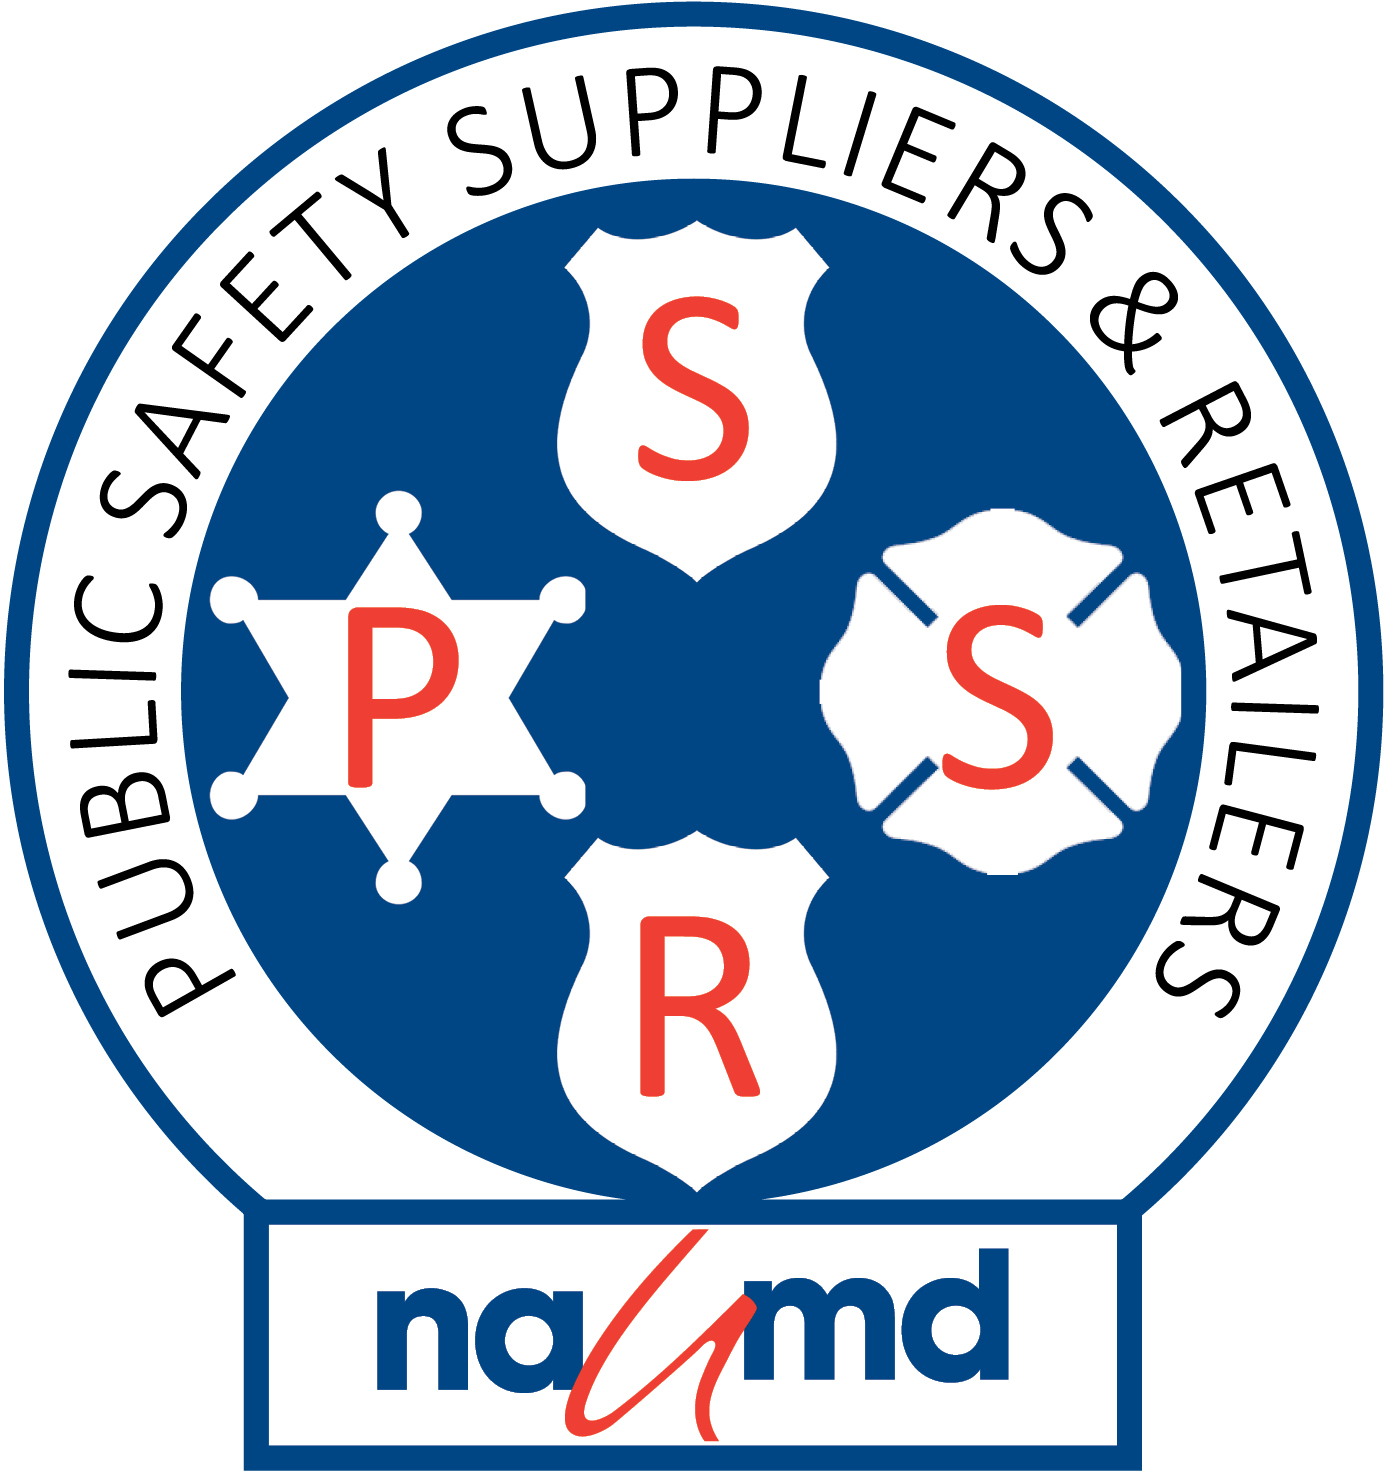 NAPED Merges with NAUMD Public Safety Suppliers & Retailers Division